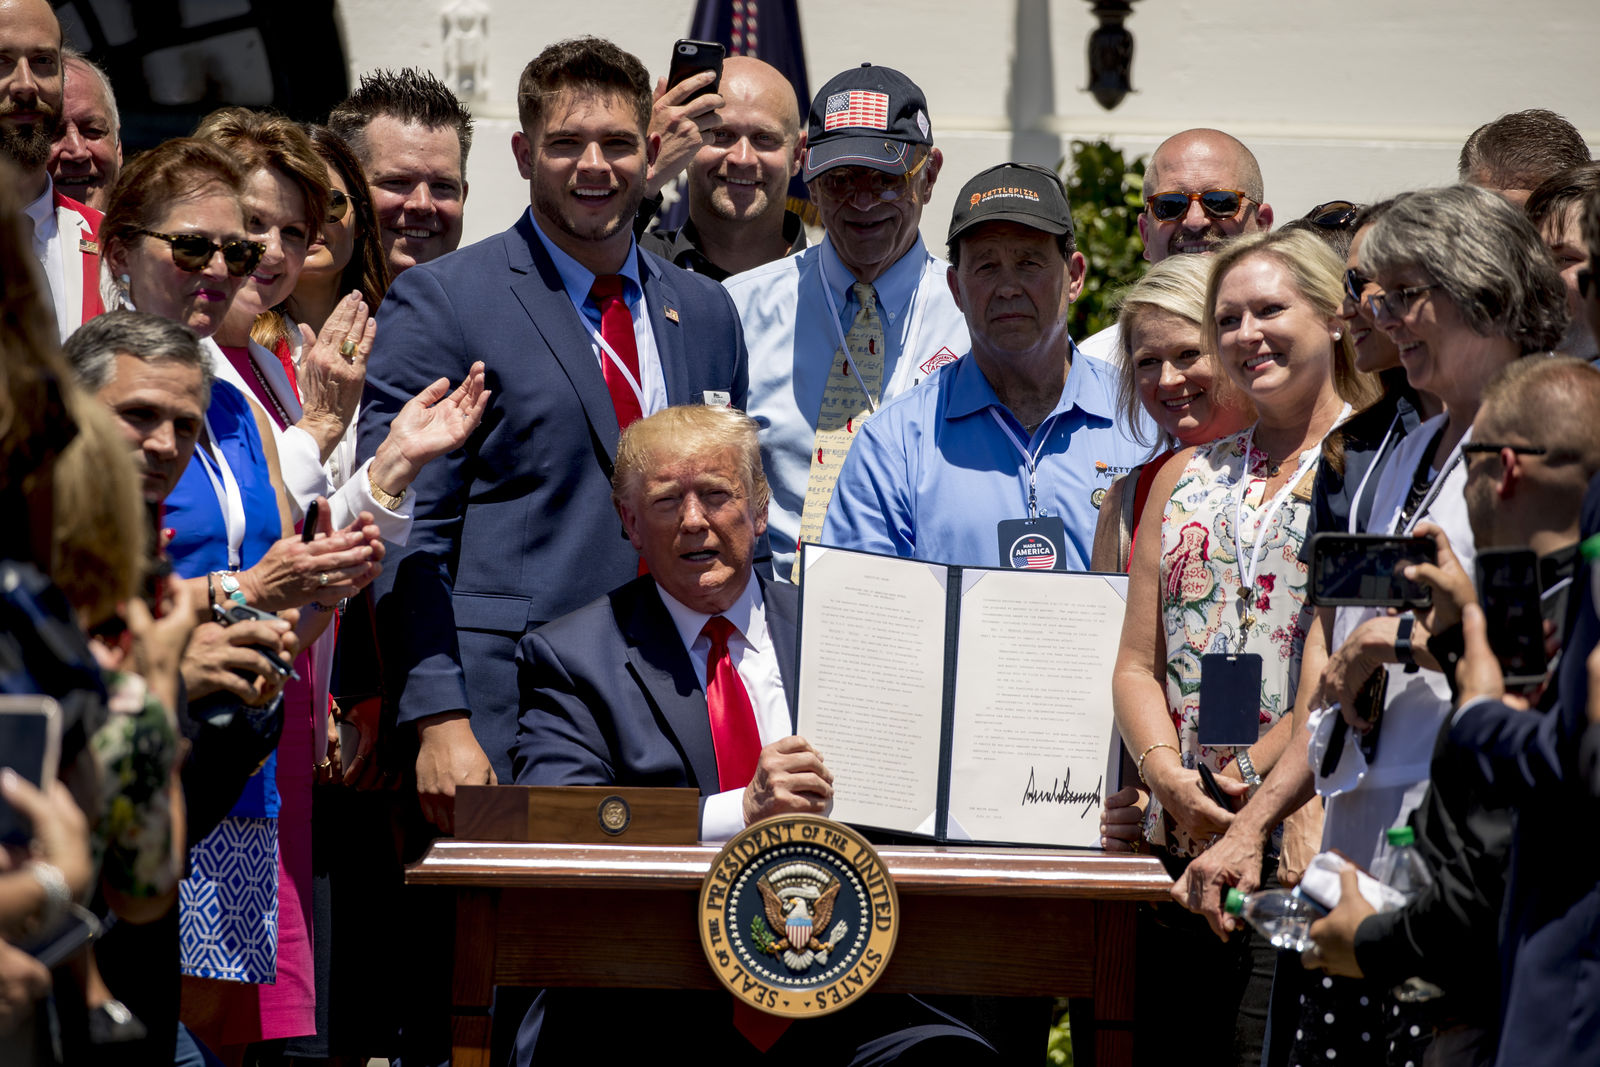 FILE - In this July 15, 2019, file photo, company representatives invited to the White House stand next to President Donald Trump as he holds up an executive order after he signs it during a Made in America showcase on the South Lawn in Washington. Trump is now three for three. Each year of his presidency, he has issued more executive orders than did former President Barack Obama during the same time-span. (AP Photo/Andrew Harnik, File)